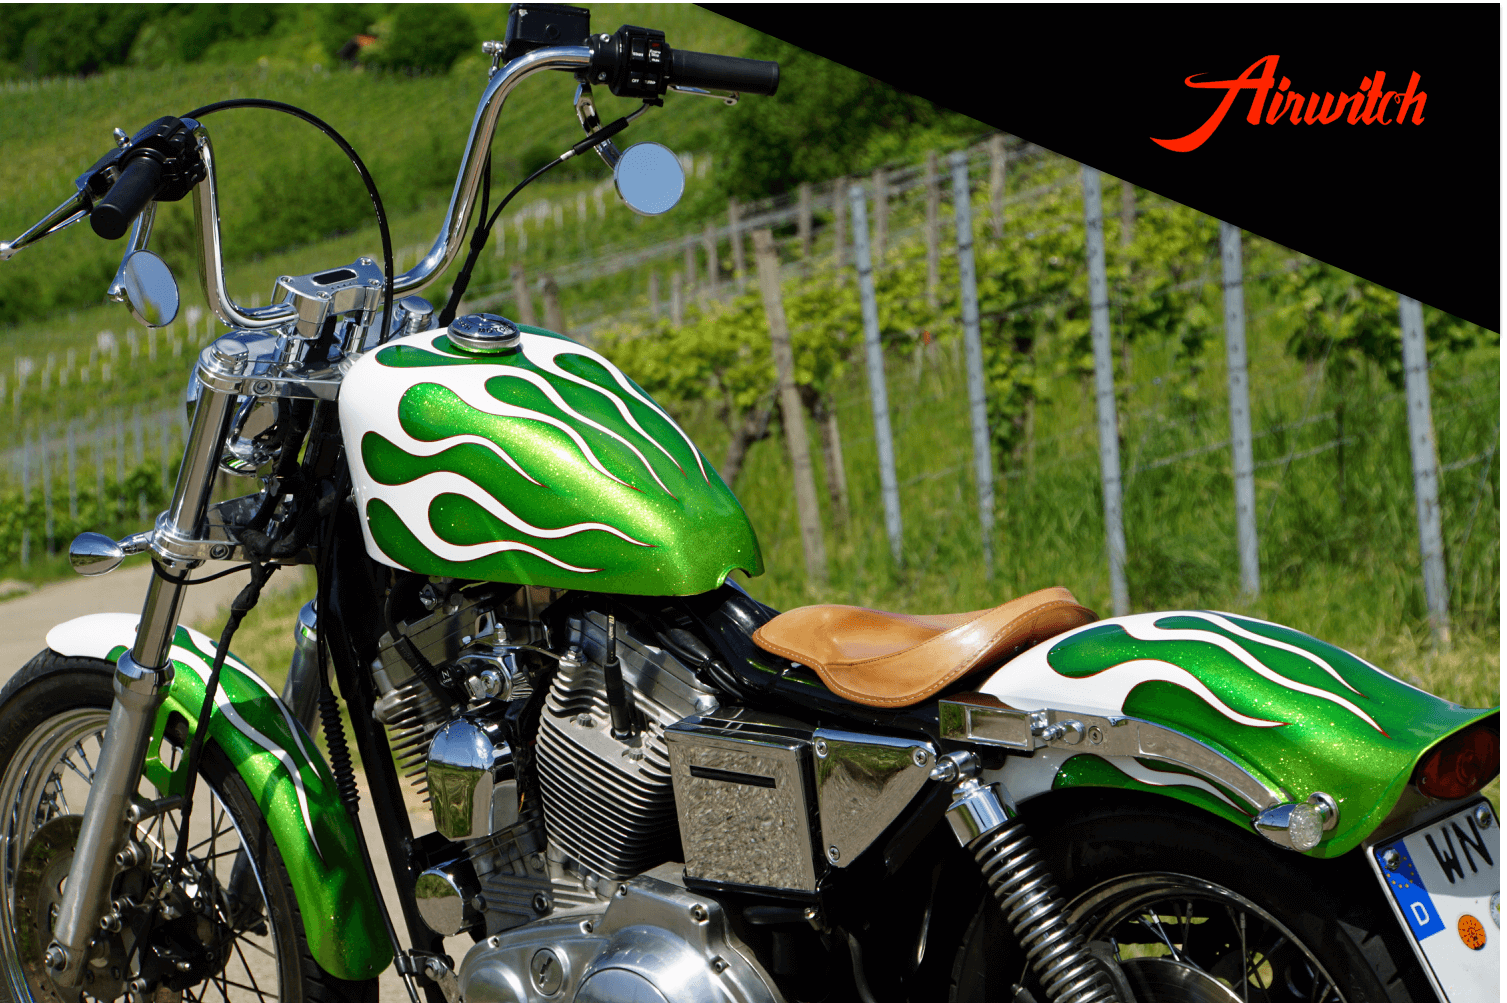 Custom Paint Green Metalflakes white Flames Harley Davidson old crazy Sportster Tank, Fender